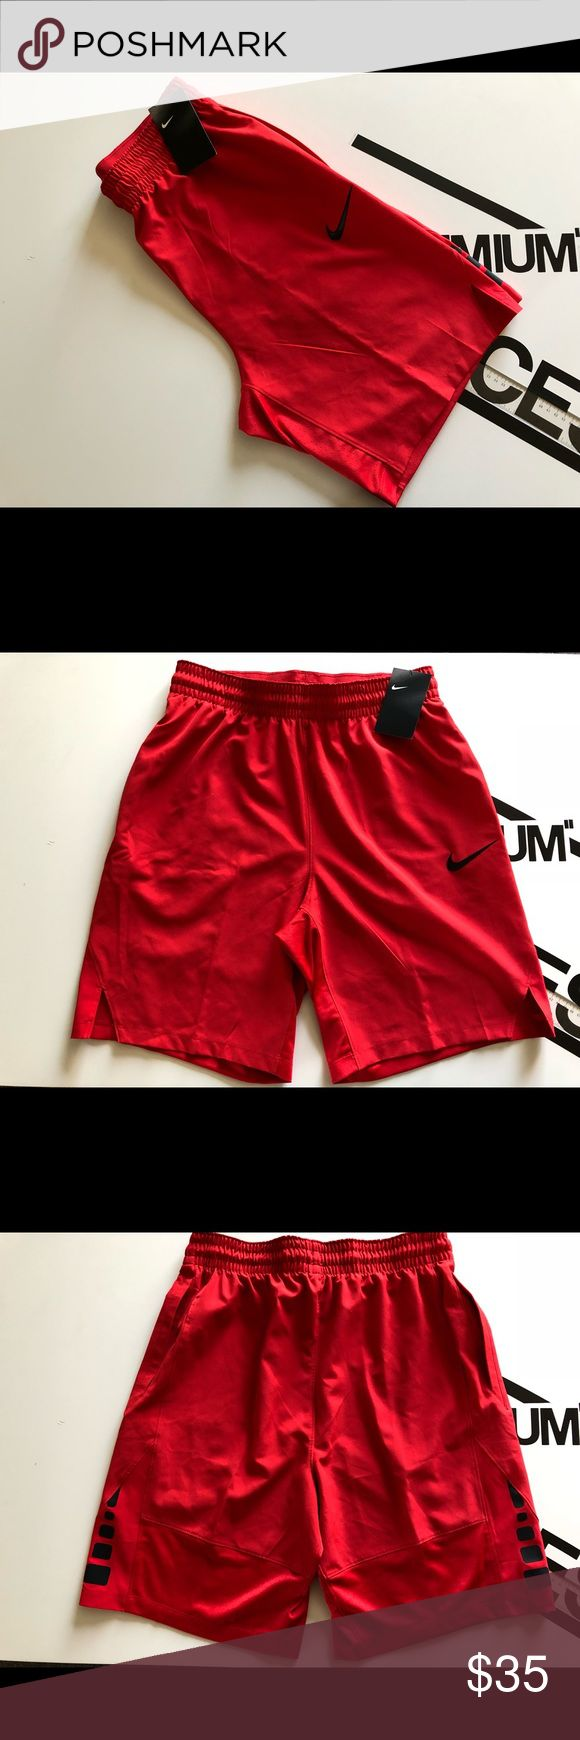 MENS NIKE FLEX HYPER ELITE BASKETBALL SHORTS | NEW ☑️ Item is brand with tags.        ✔️ Style: 831368       ✔️ Color Code: 657        ✔️ Retail: $55.00 ☑️ Will ship out within 24 hours.  ❌ No transactions outside of Posh  🔘 All my inventory in posh comes from my eBay store page, (cross listed) so prices are competitive with that platform as well.  🔘 Stores.ebay.com/premiumlacesthreads Nike Shorts Athletic